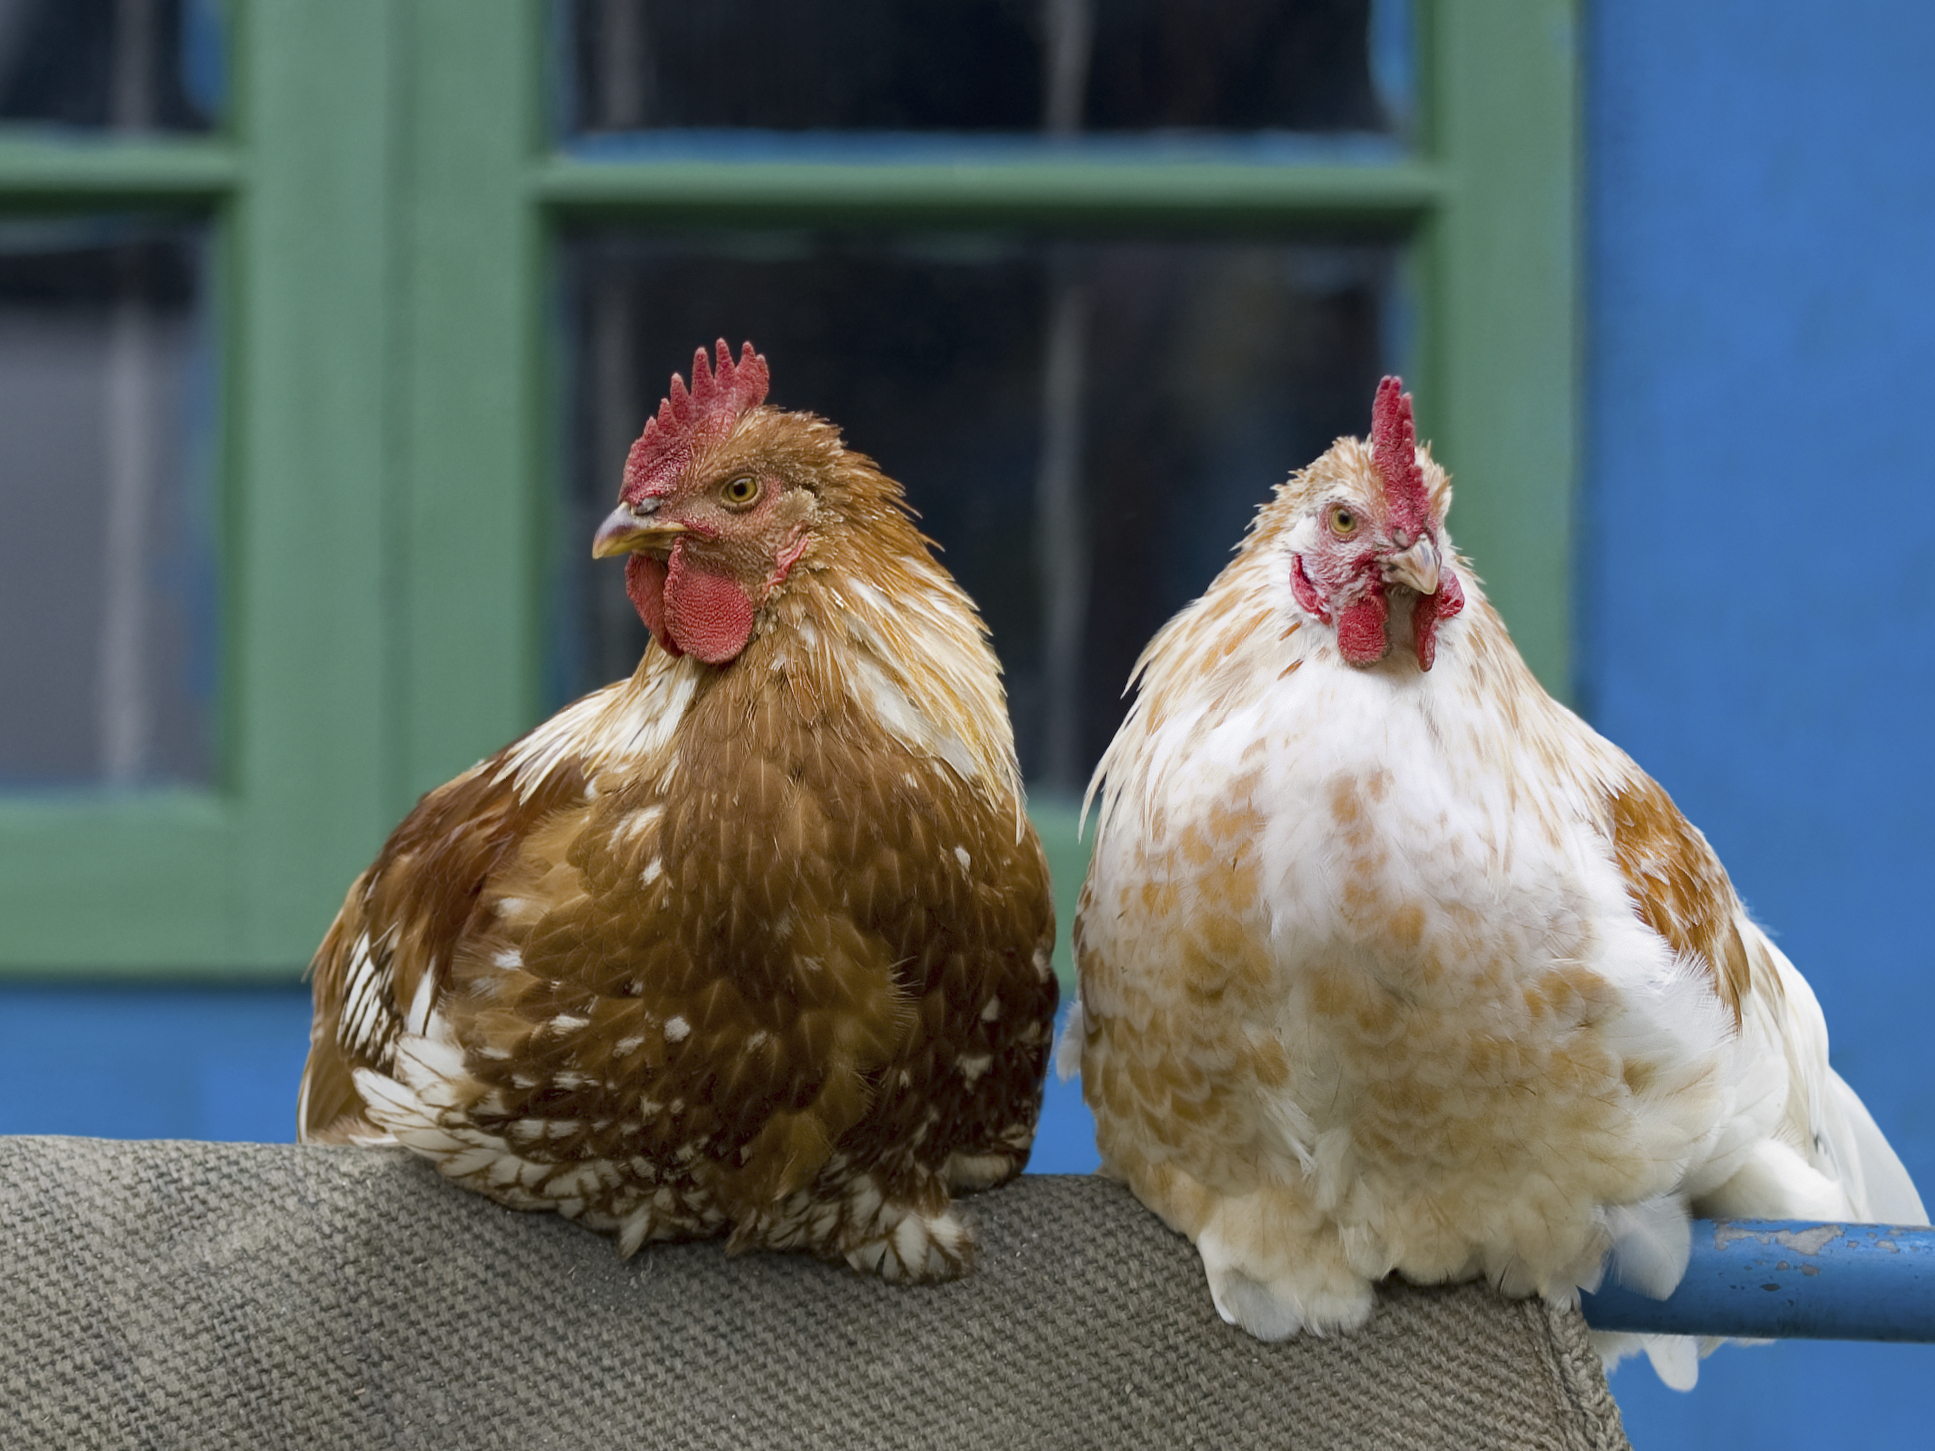 Backyard Chickens Cute Trendy Spreaders Of Salmonella The Salt Npr Finding the perfect chicken names for your flock can be quite a daunting task. npr